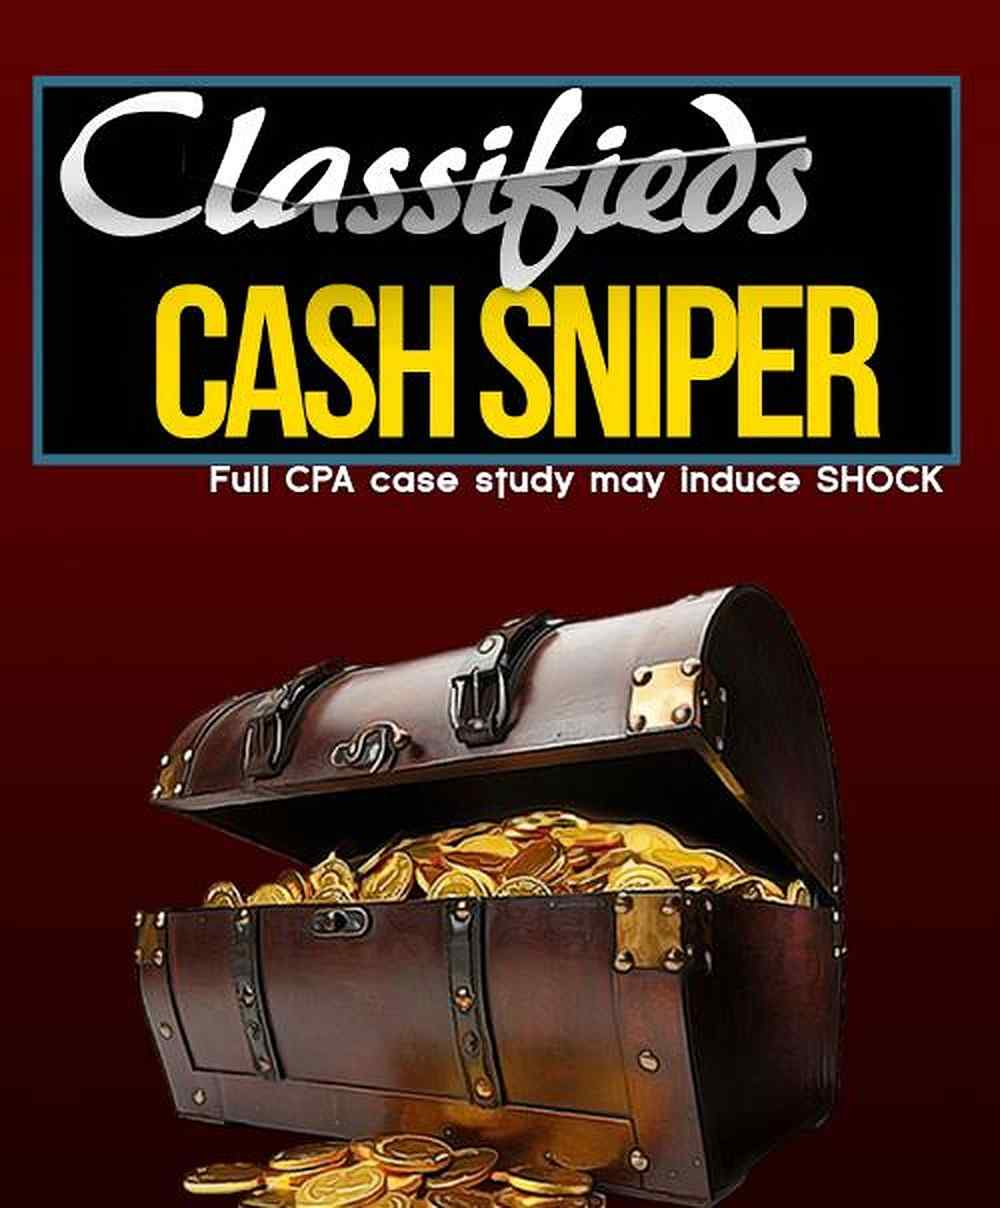 Classifieds Cash Sniper – Full CPA Case Study May Induce Shock